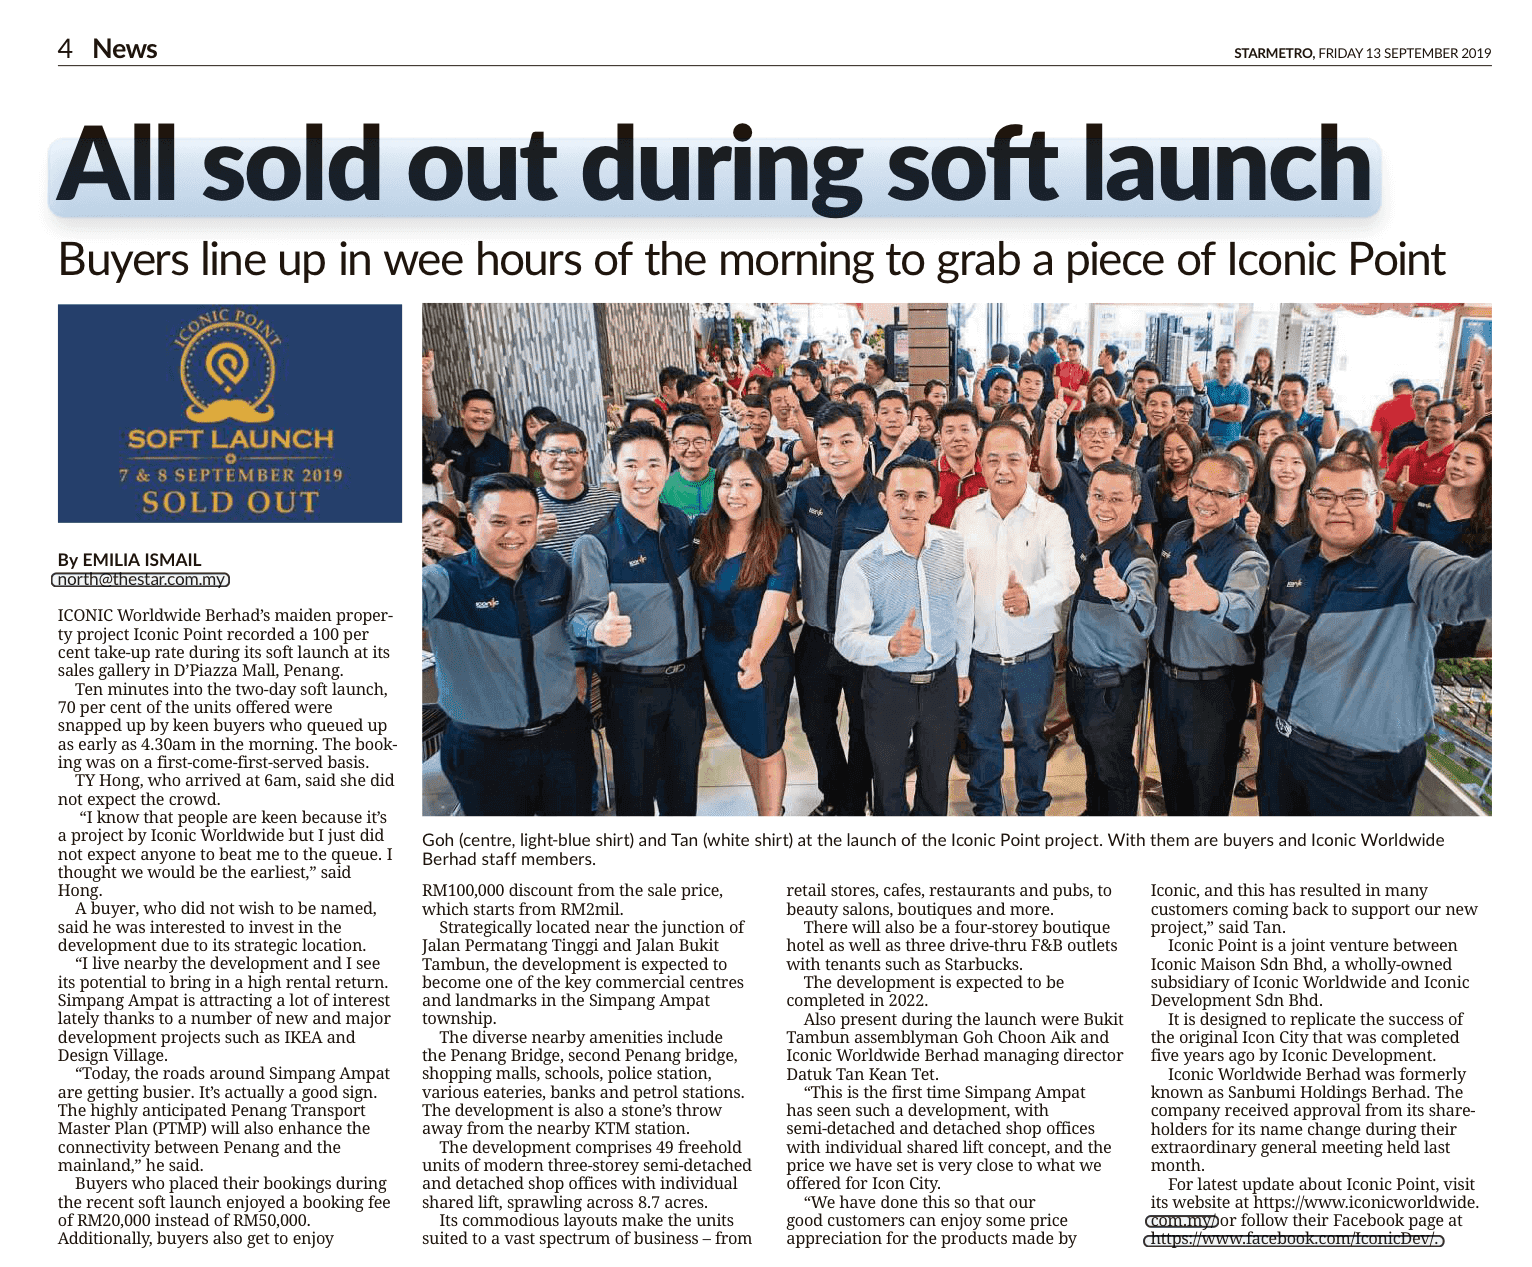 19sep13 the star metro north all sold out during soft launch